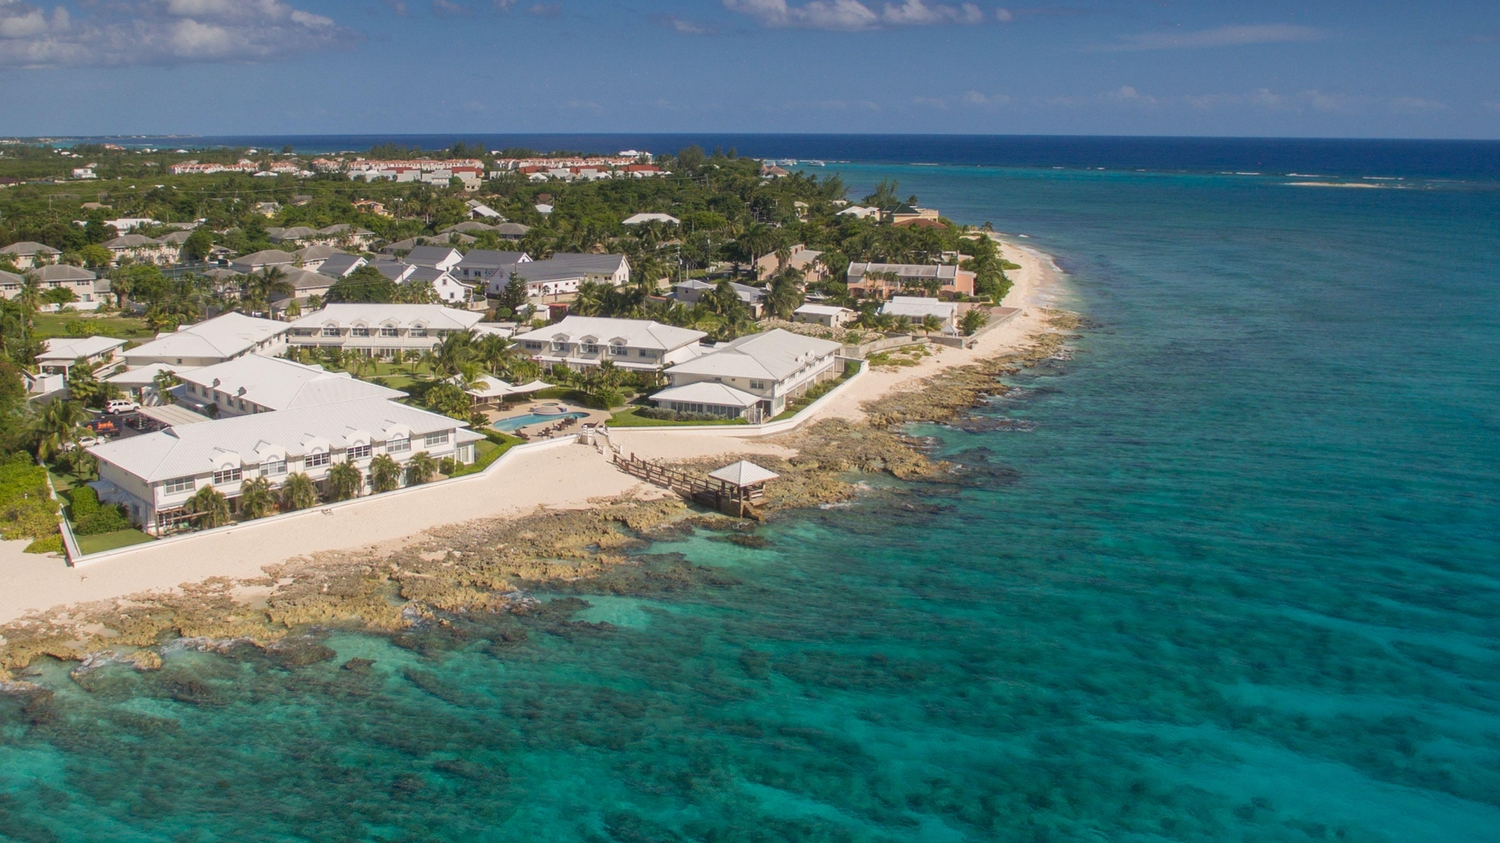 Aerial view of windsor village in south sound cayman islands